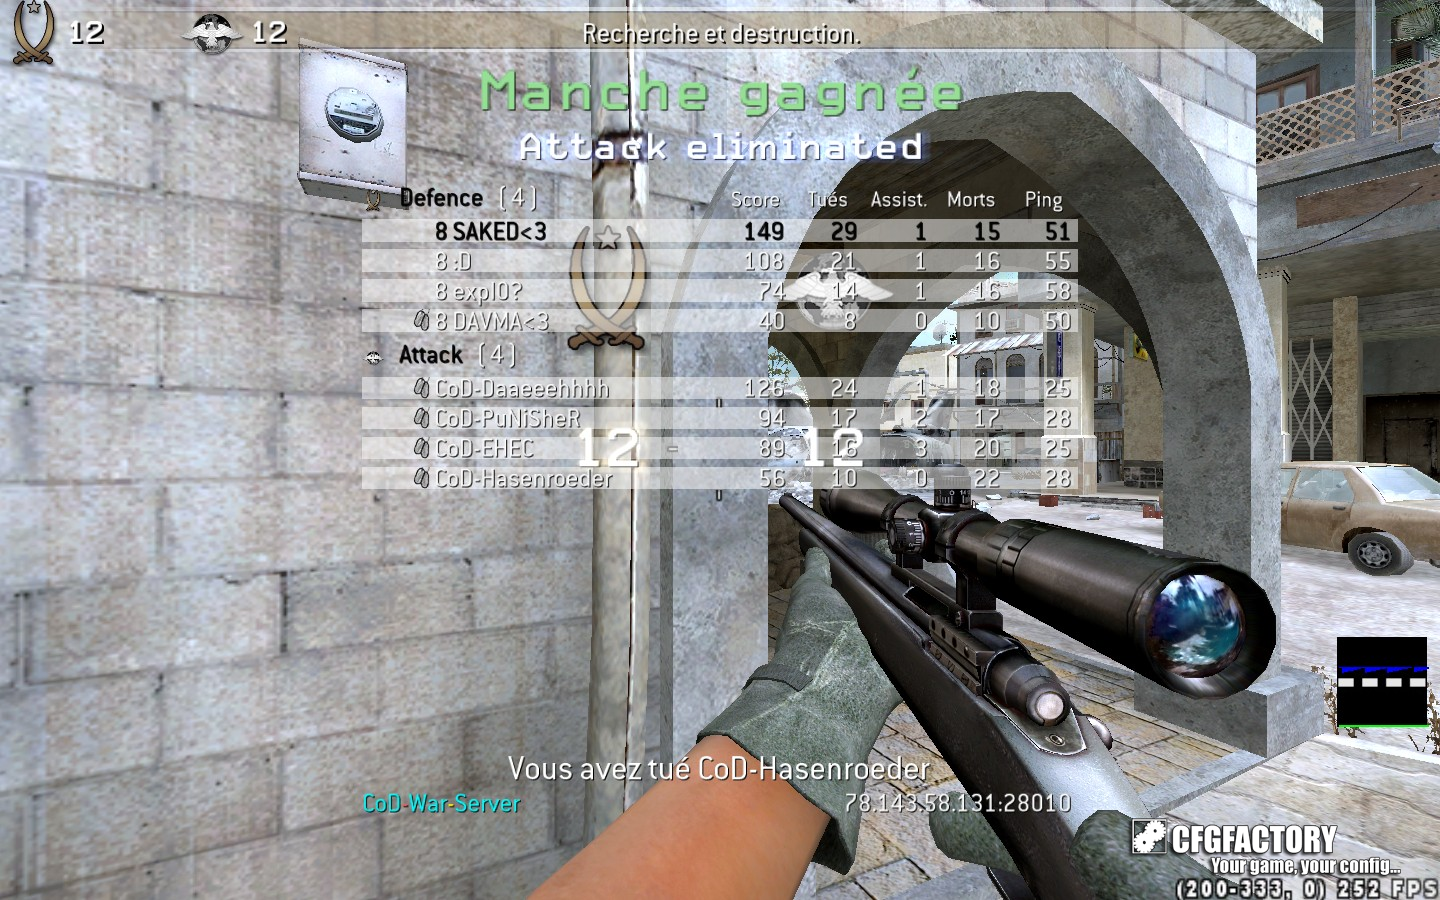 cod4, configs, saked config, saked